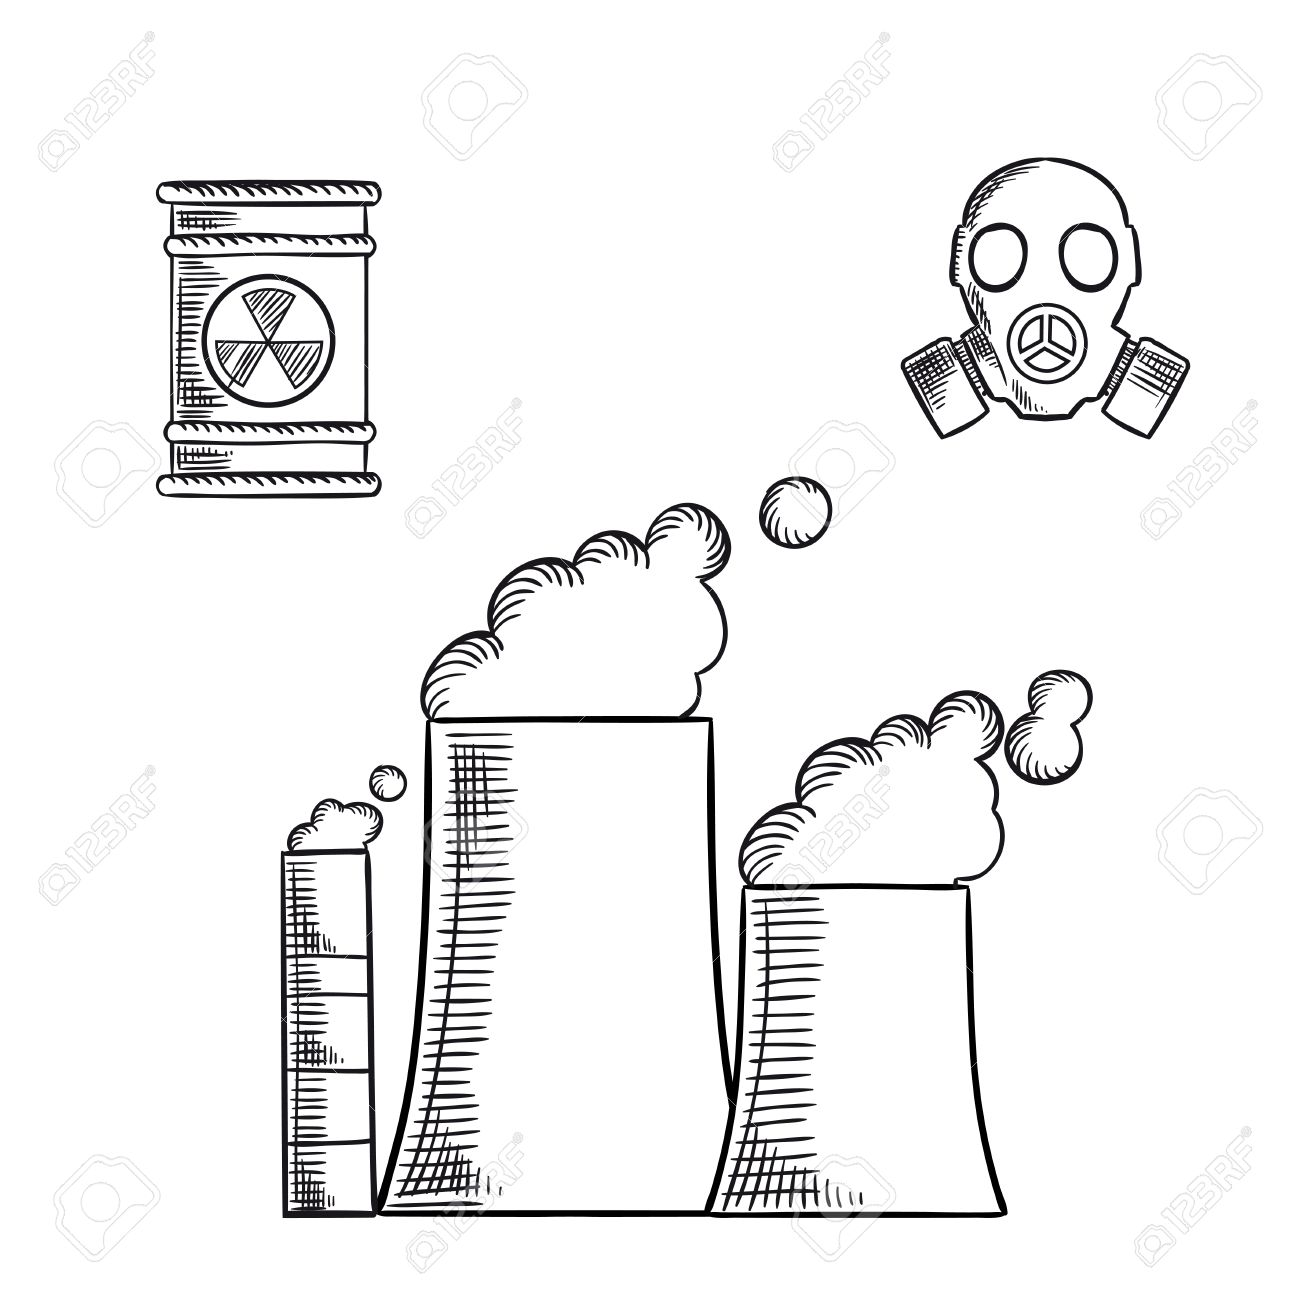 Destruction and environment pollution sketch icons with fuming